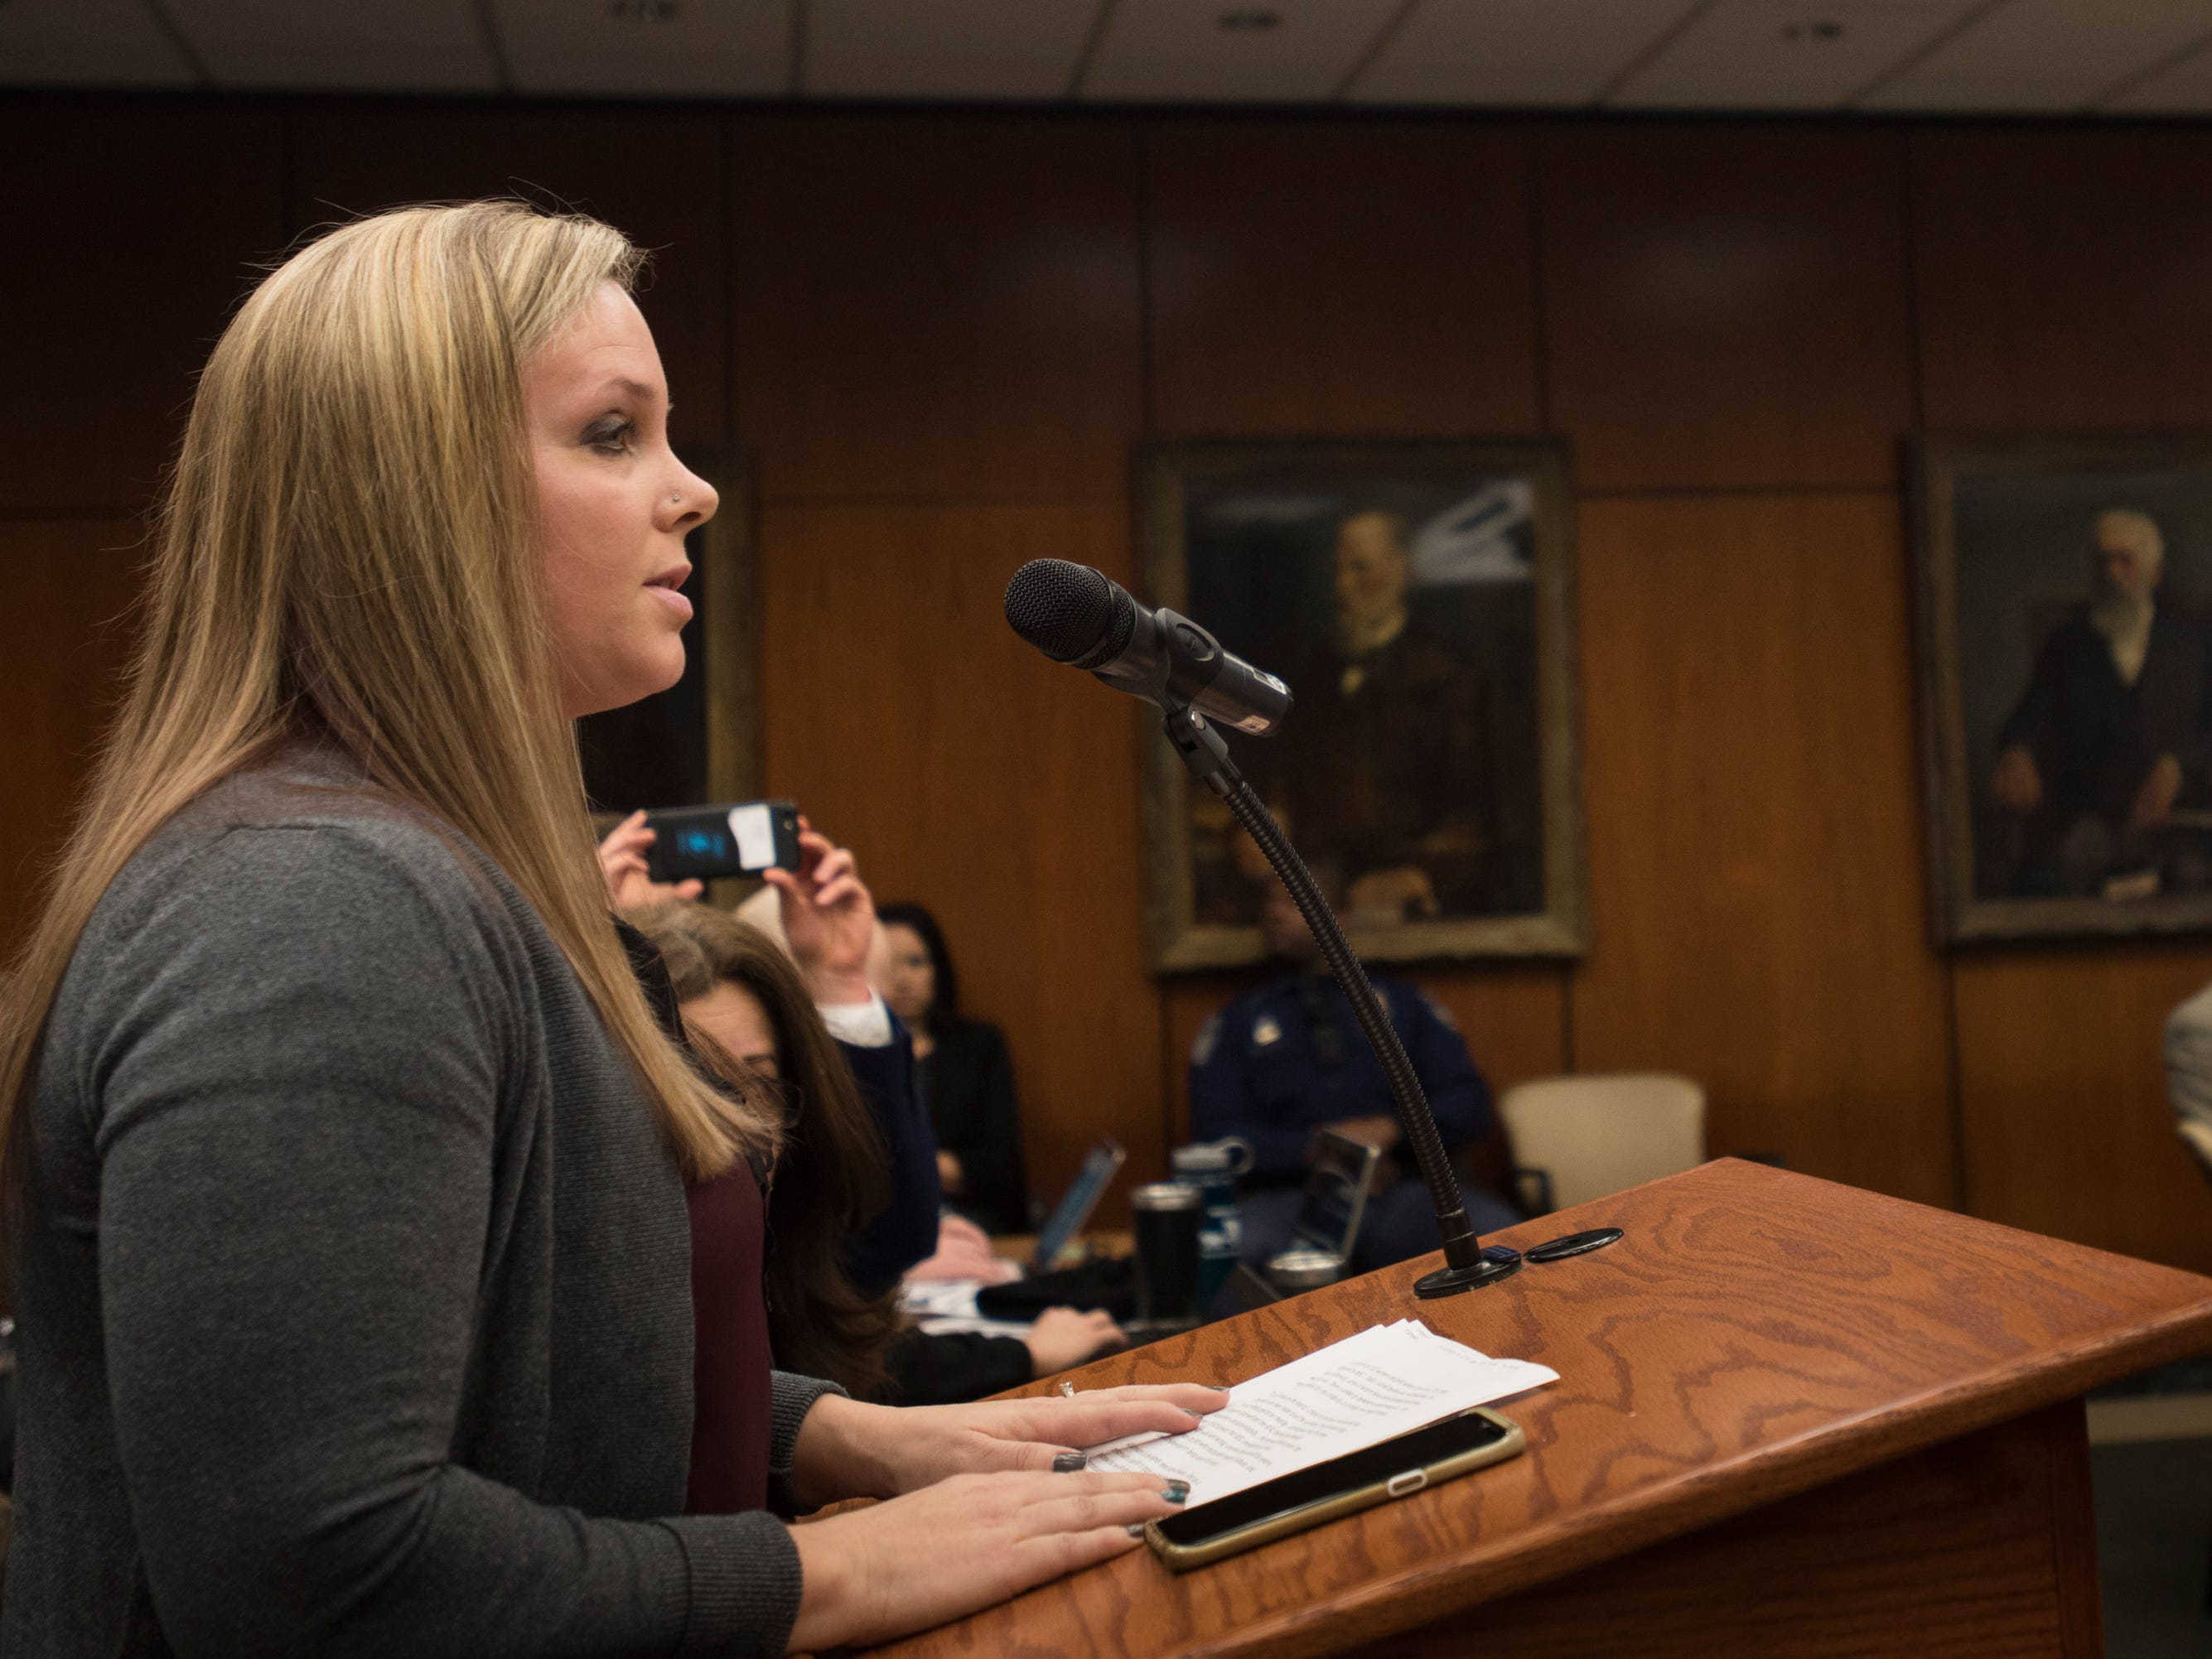 """Former MSU alumna Nicole and Nassar survivor Nicole Casady addresses the MSU Board of Trustees Friday, Feb. 15, 2019.  """"This board has the singular ability to restore our trust  in humanity and this institution. Together, we can rewrite the headlines. Tomorrow, can they read 'MSU trustees deliver on the promises they made to all survivors?'"""""""